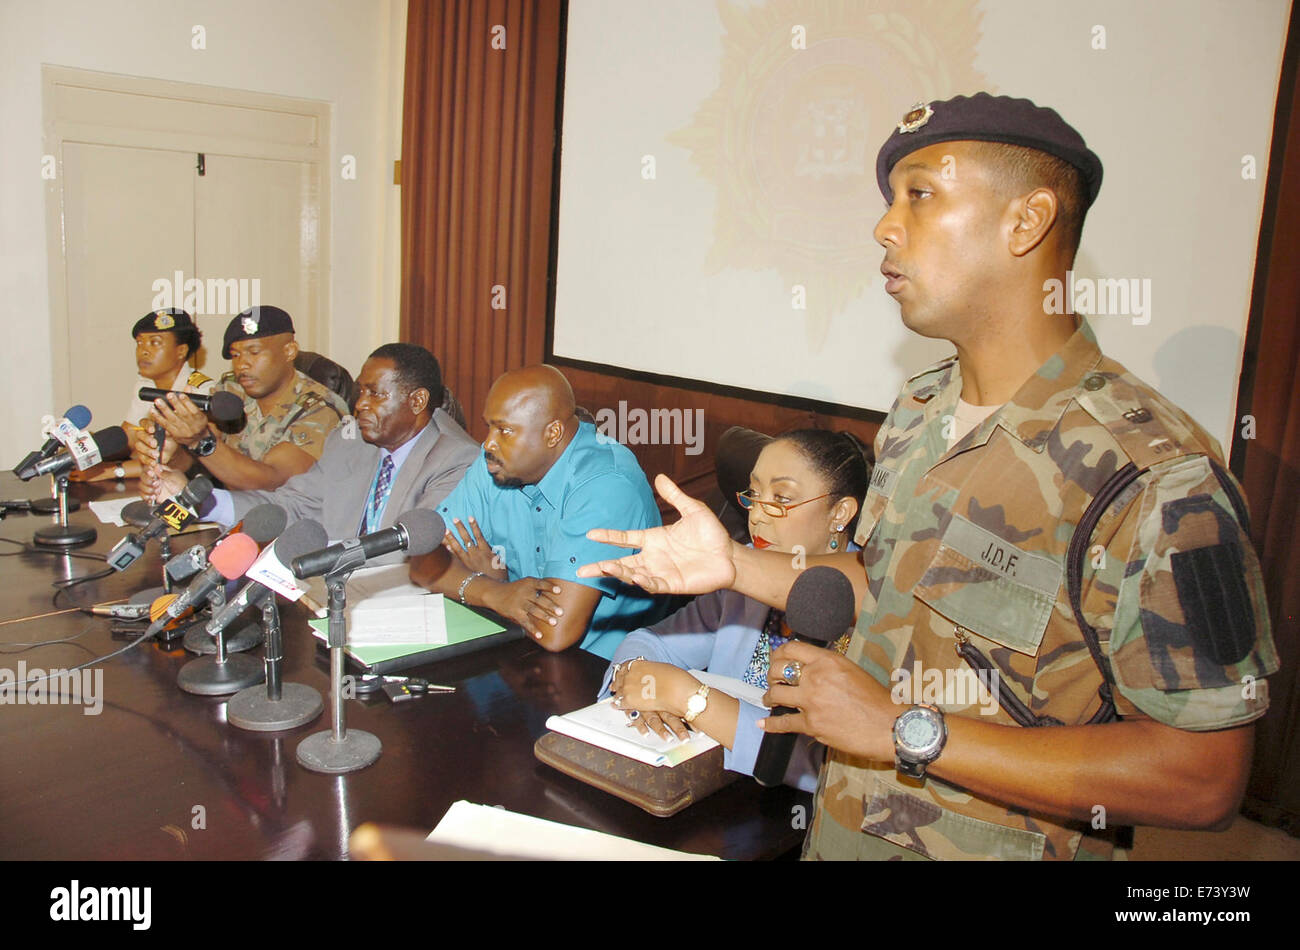 Kingston, Jamaica. 5th Sep, 2014. Members of the Jamaica Defence Force (JDP) take part in a press conference on - Stock Image